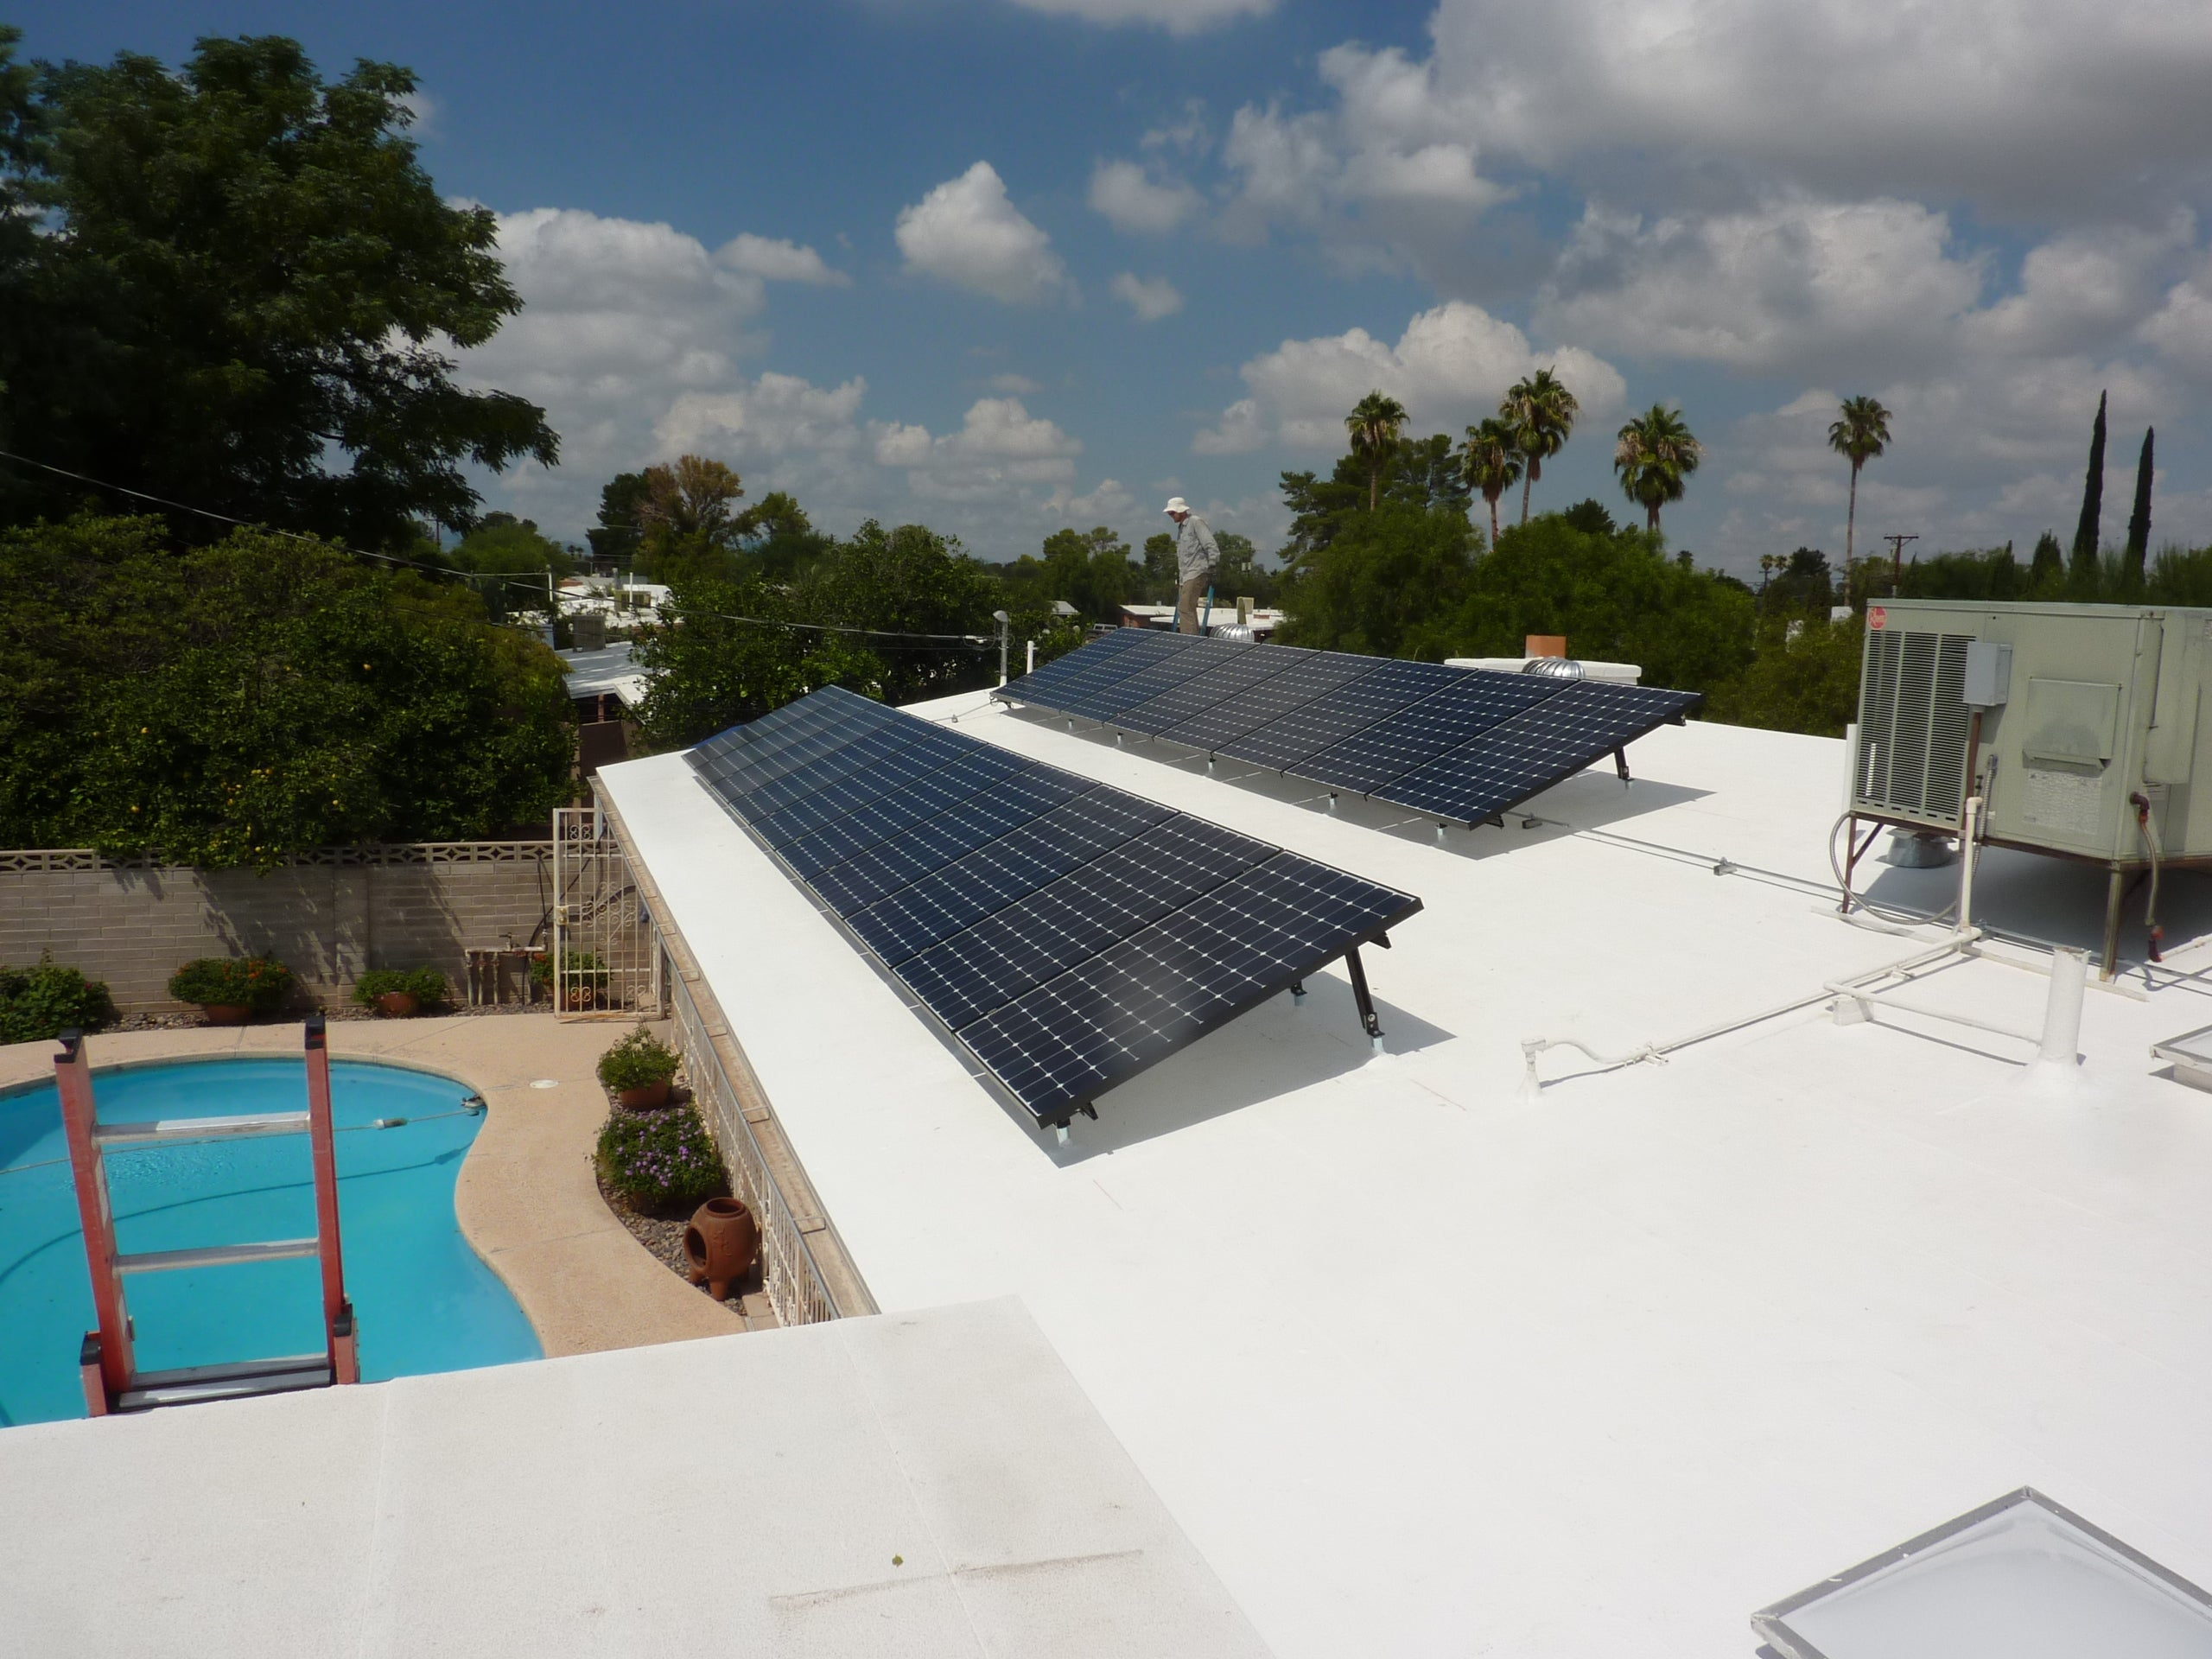 Vivint solar reviews california - Two Years And Still Perfect